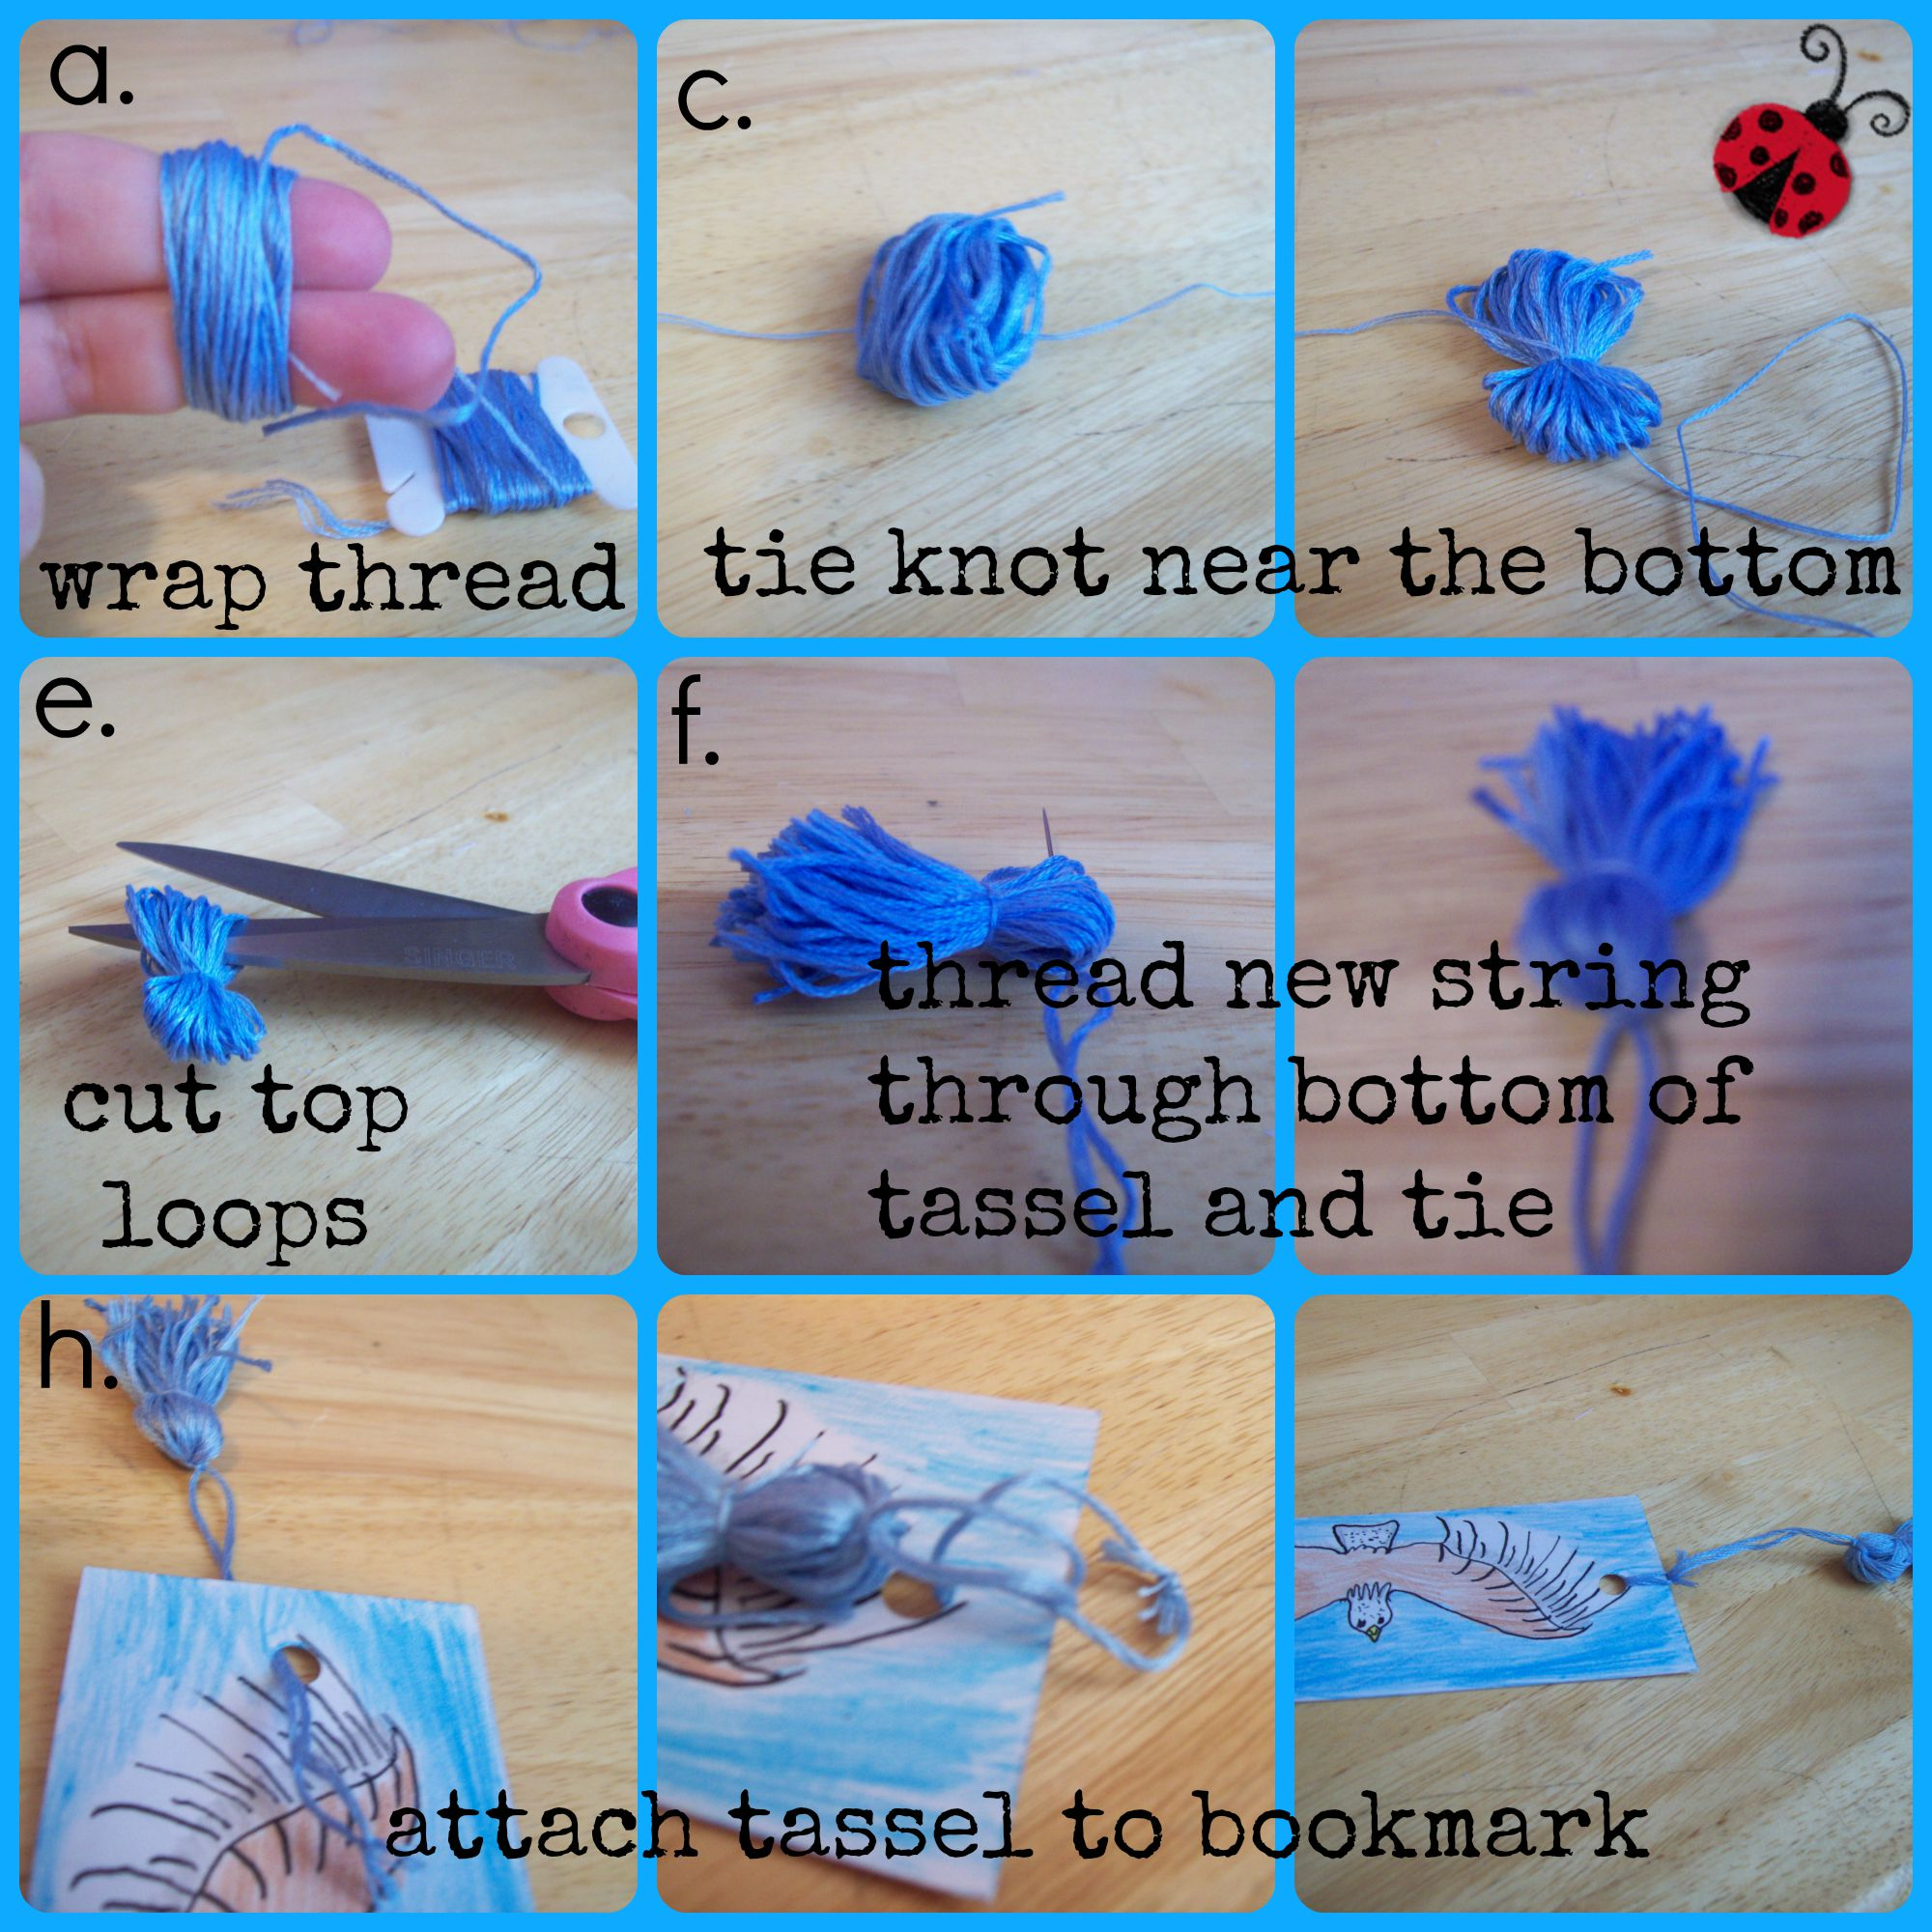 Diy tassel bookmark craftbnb How to make a simple bookmark